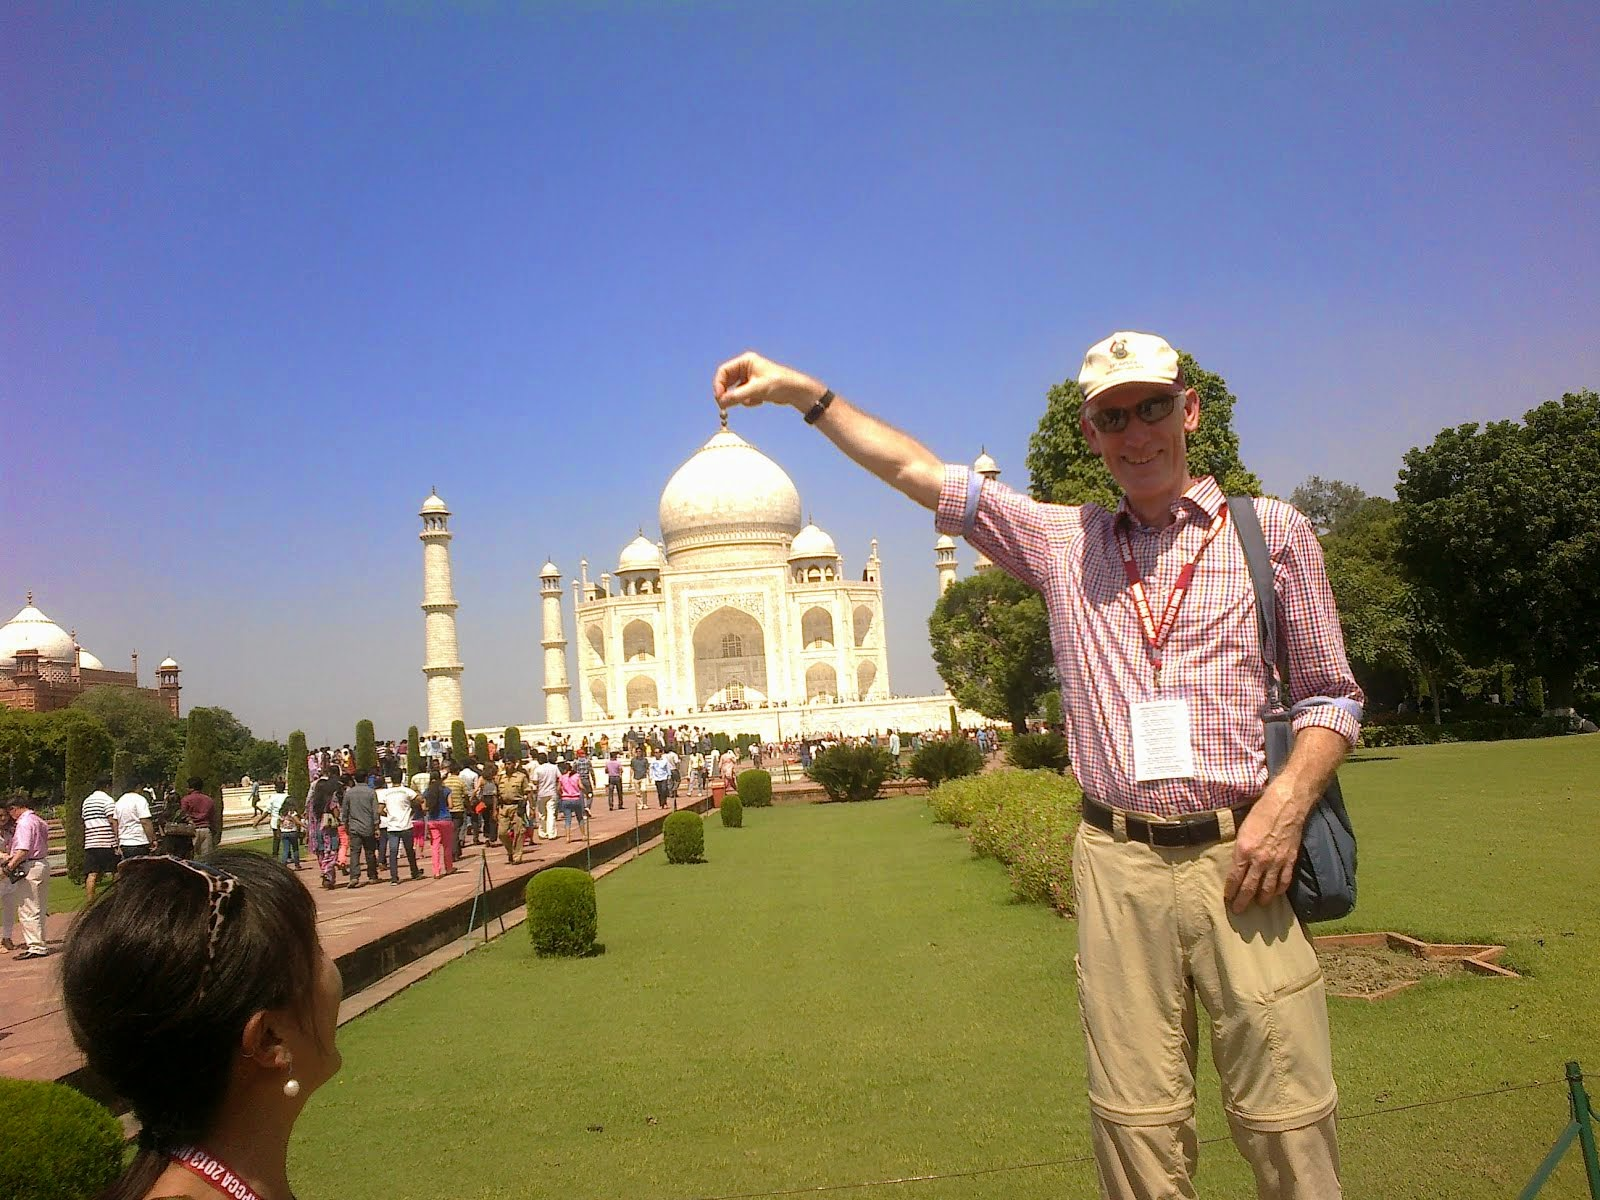 I can lift Taj Mahal